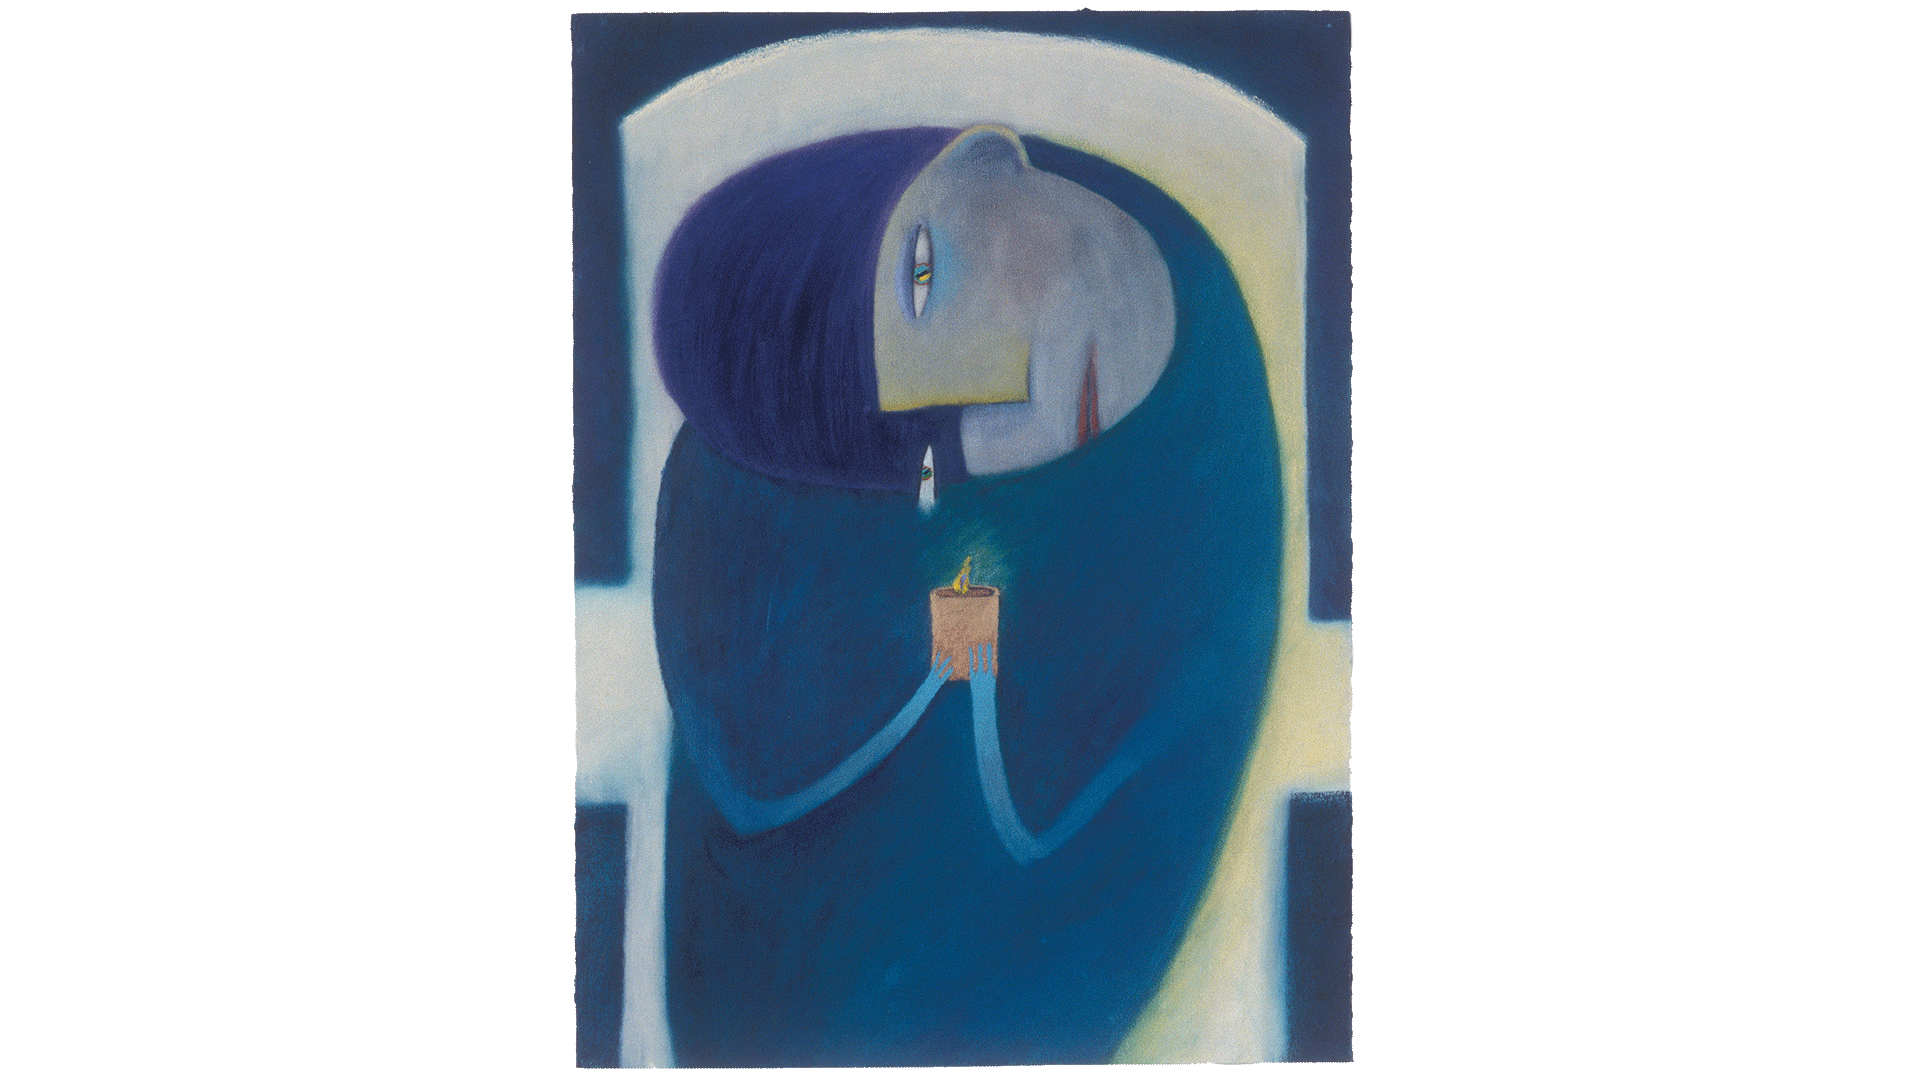 virginiahalstead.com/Paintings/Searching-for-meditation.png